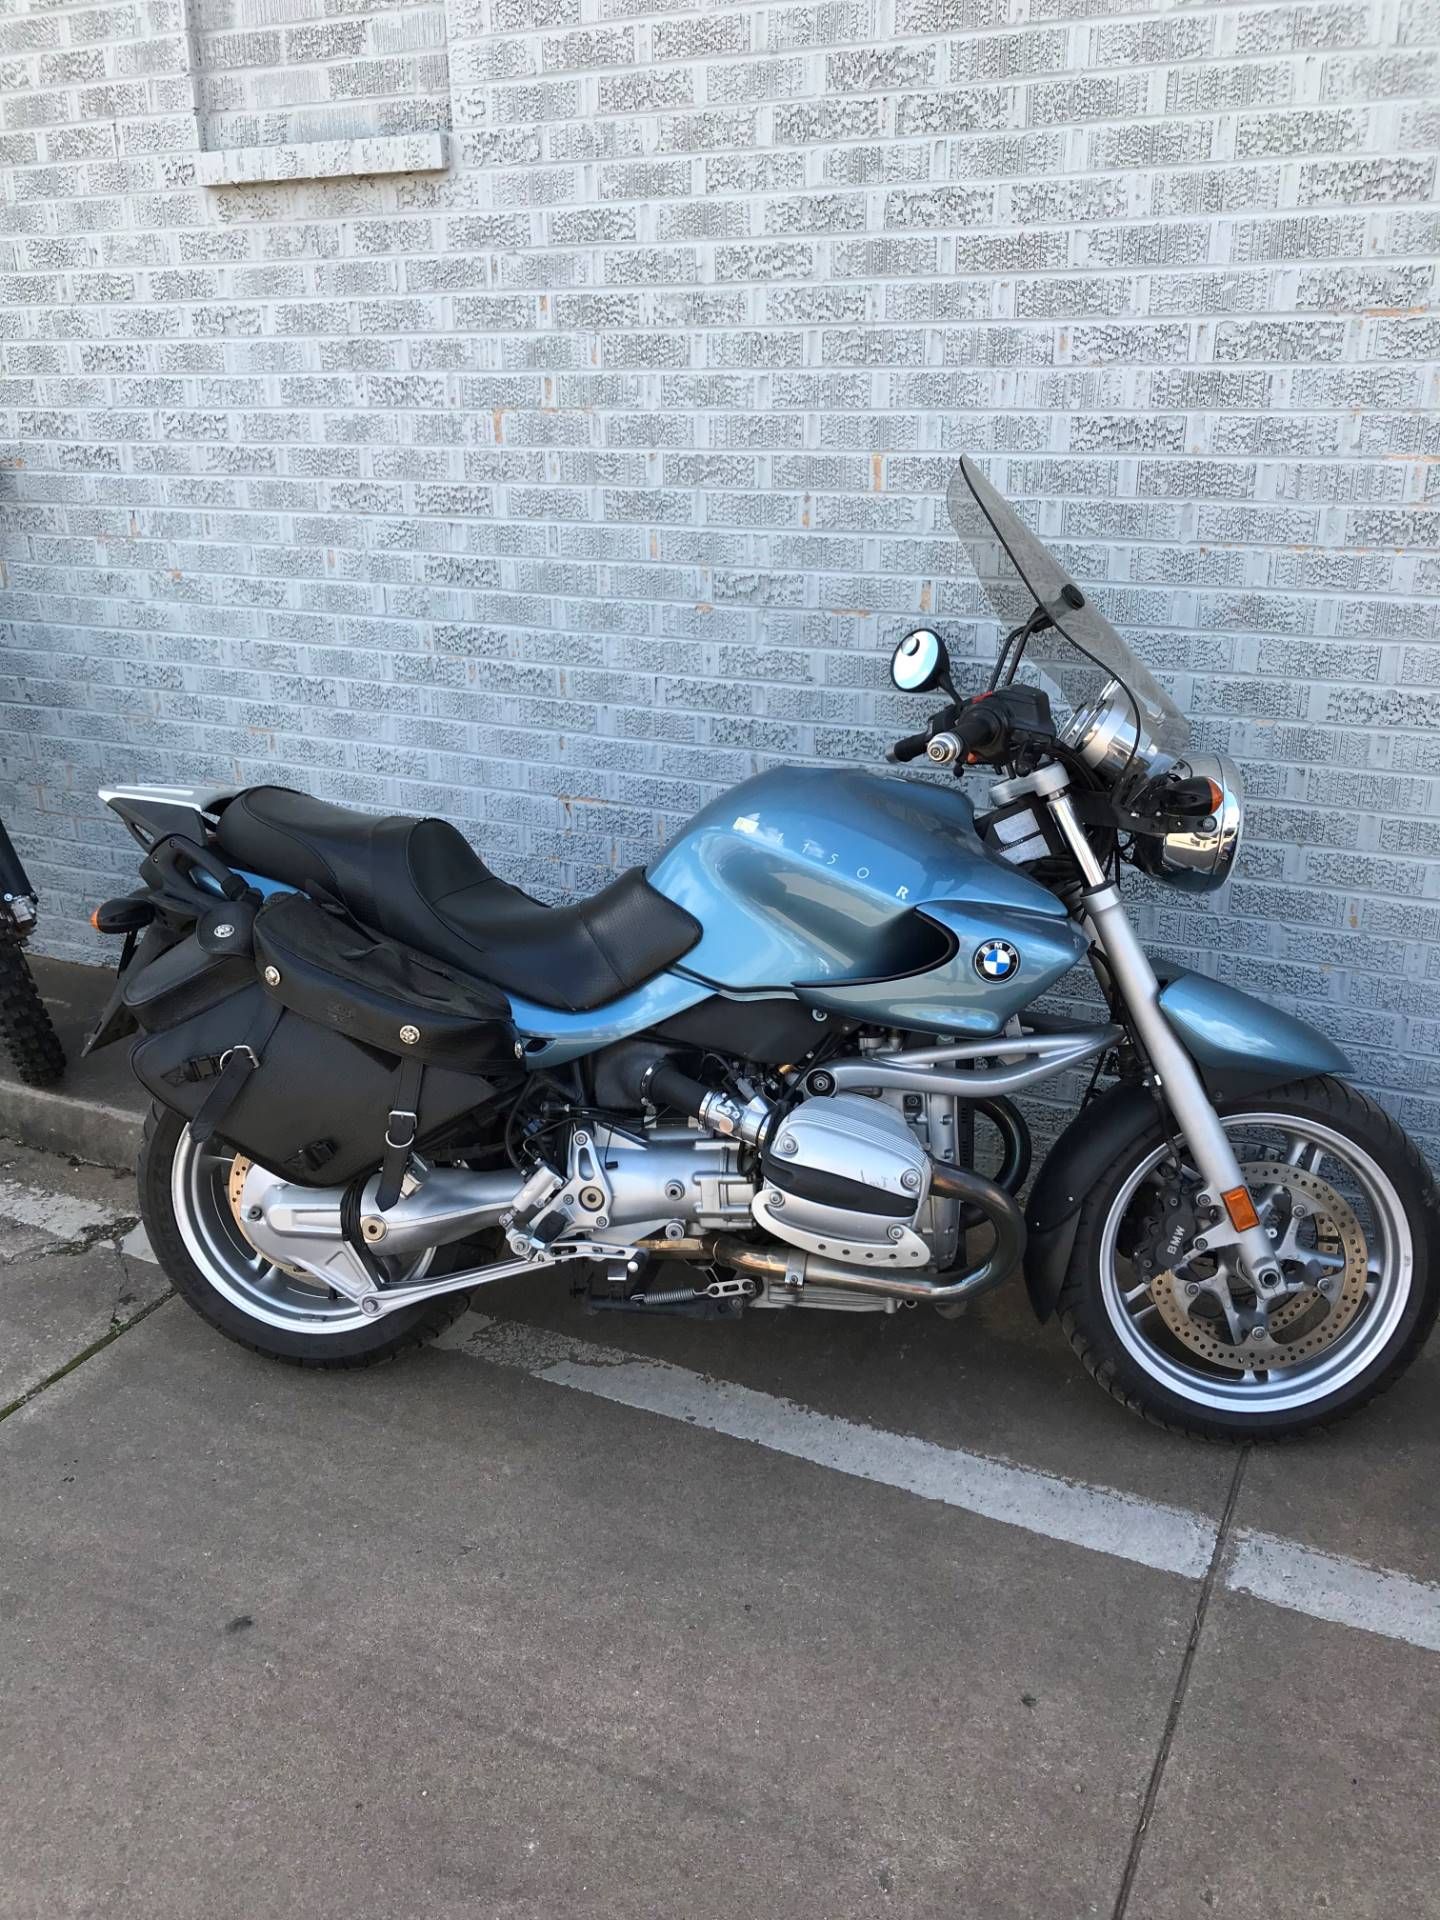 Used 2002 Bmw R 1150 R Abs Motorcycles In Stillwater Ok